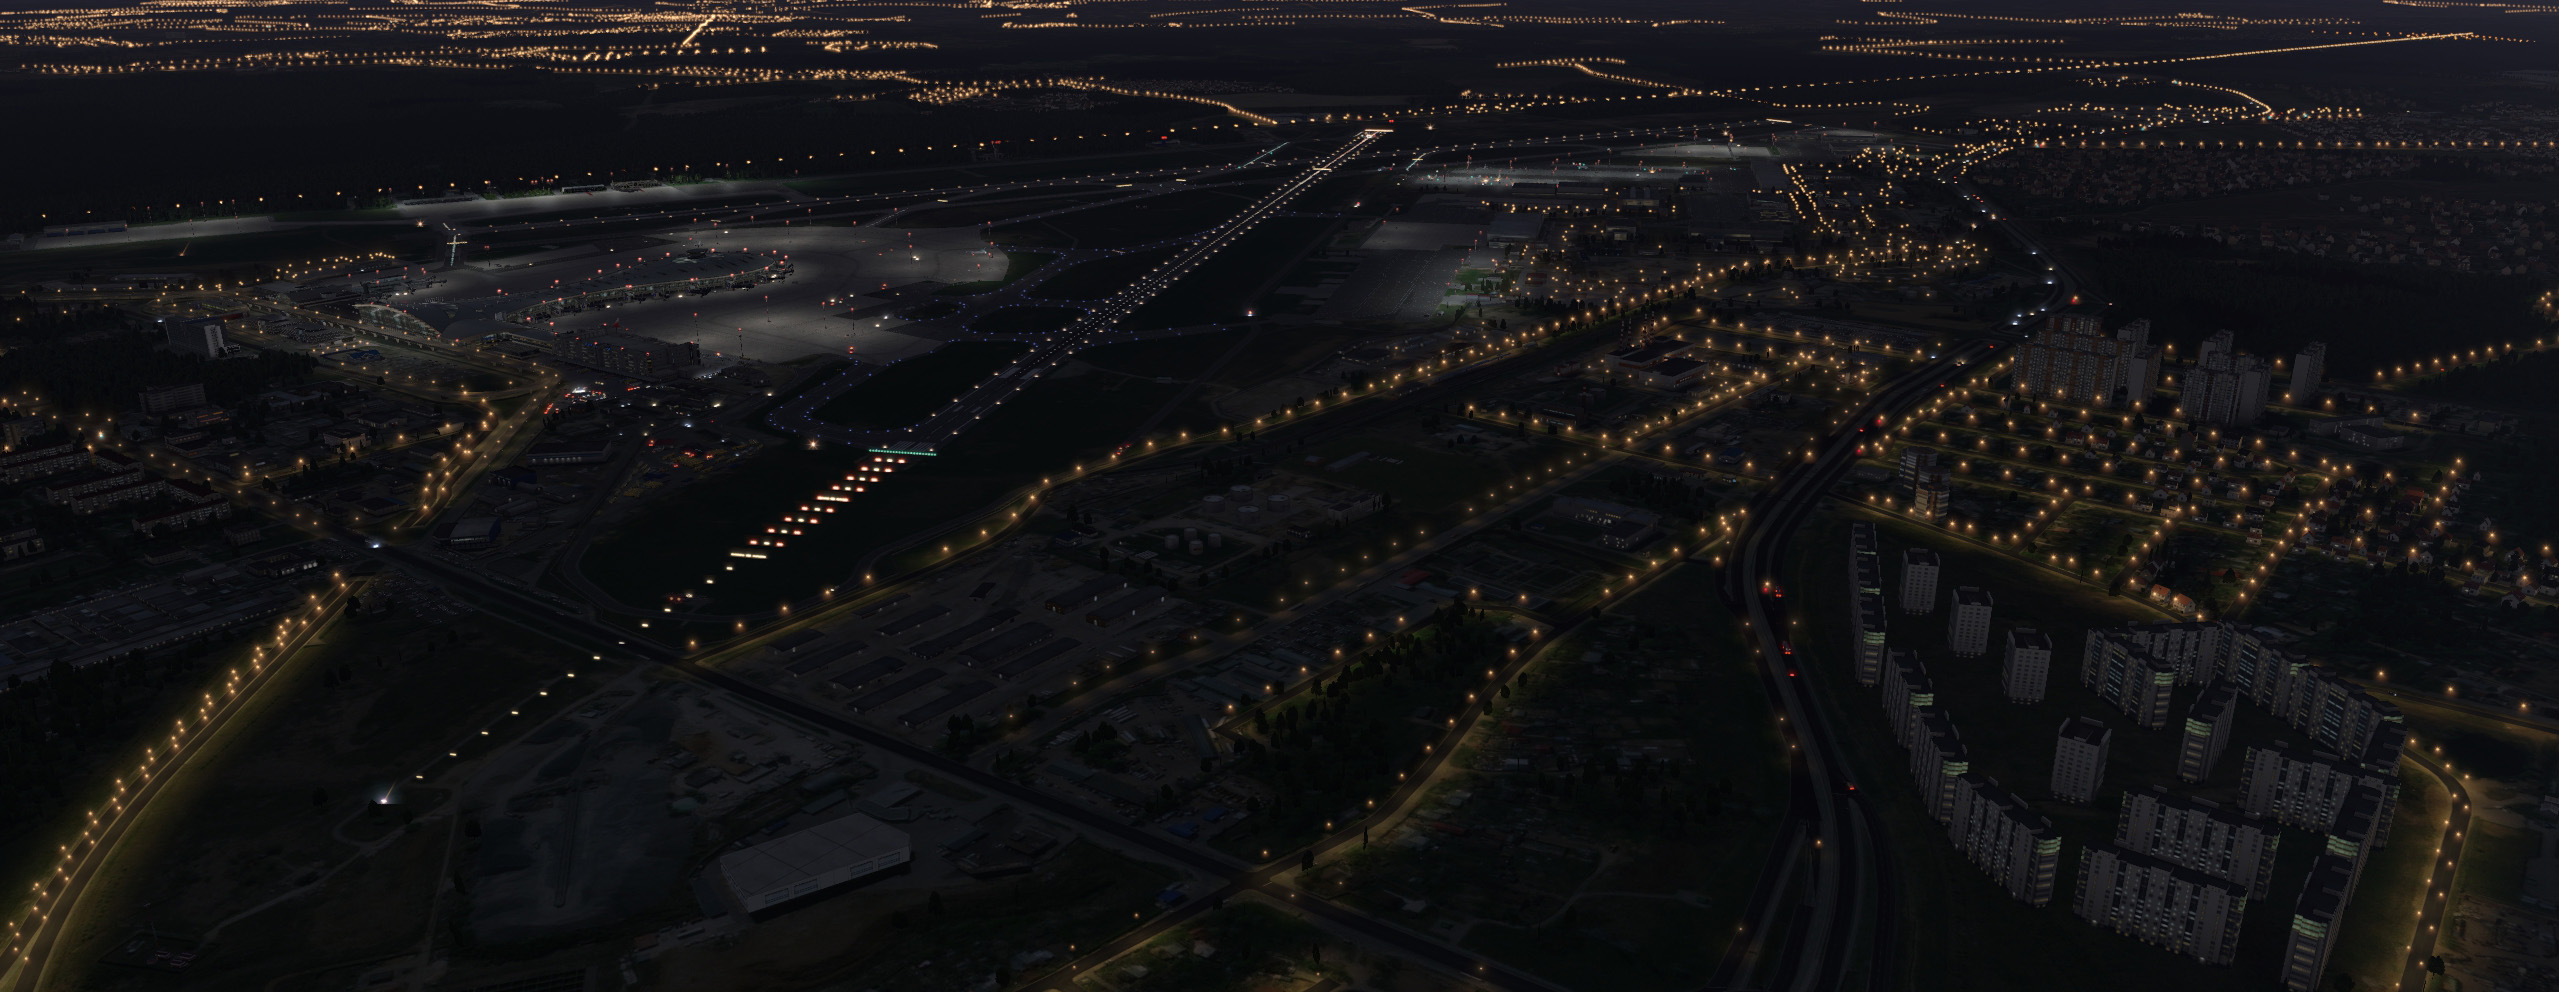 JUSTSIM - VNUKOVO INTERNATIONAL AIRPORT UUWW X-PLANE 11